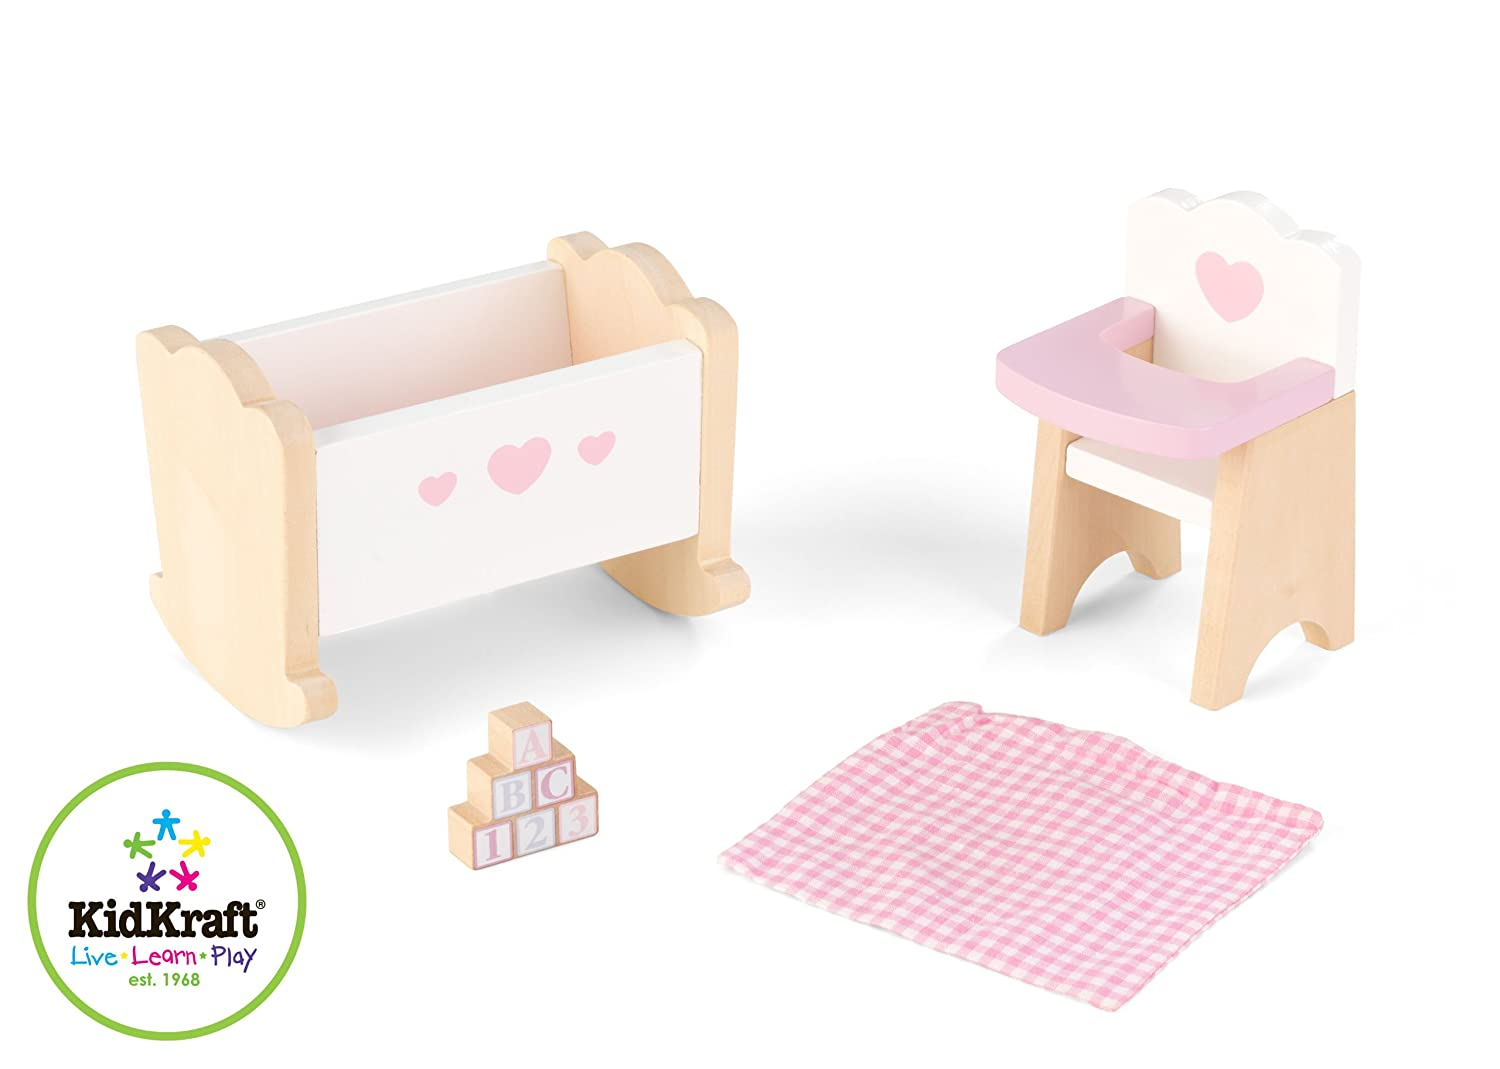 dolls furniture set. KidKraft Doll House Furniture Set (28 Pieces): KidKraft: Amazon.co.uk: Toys \u0026 Games Dolls